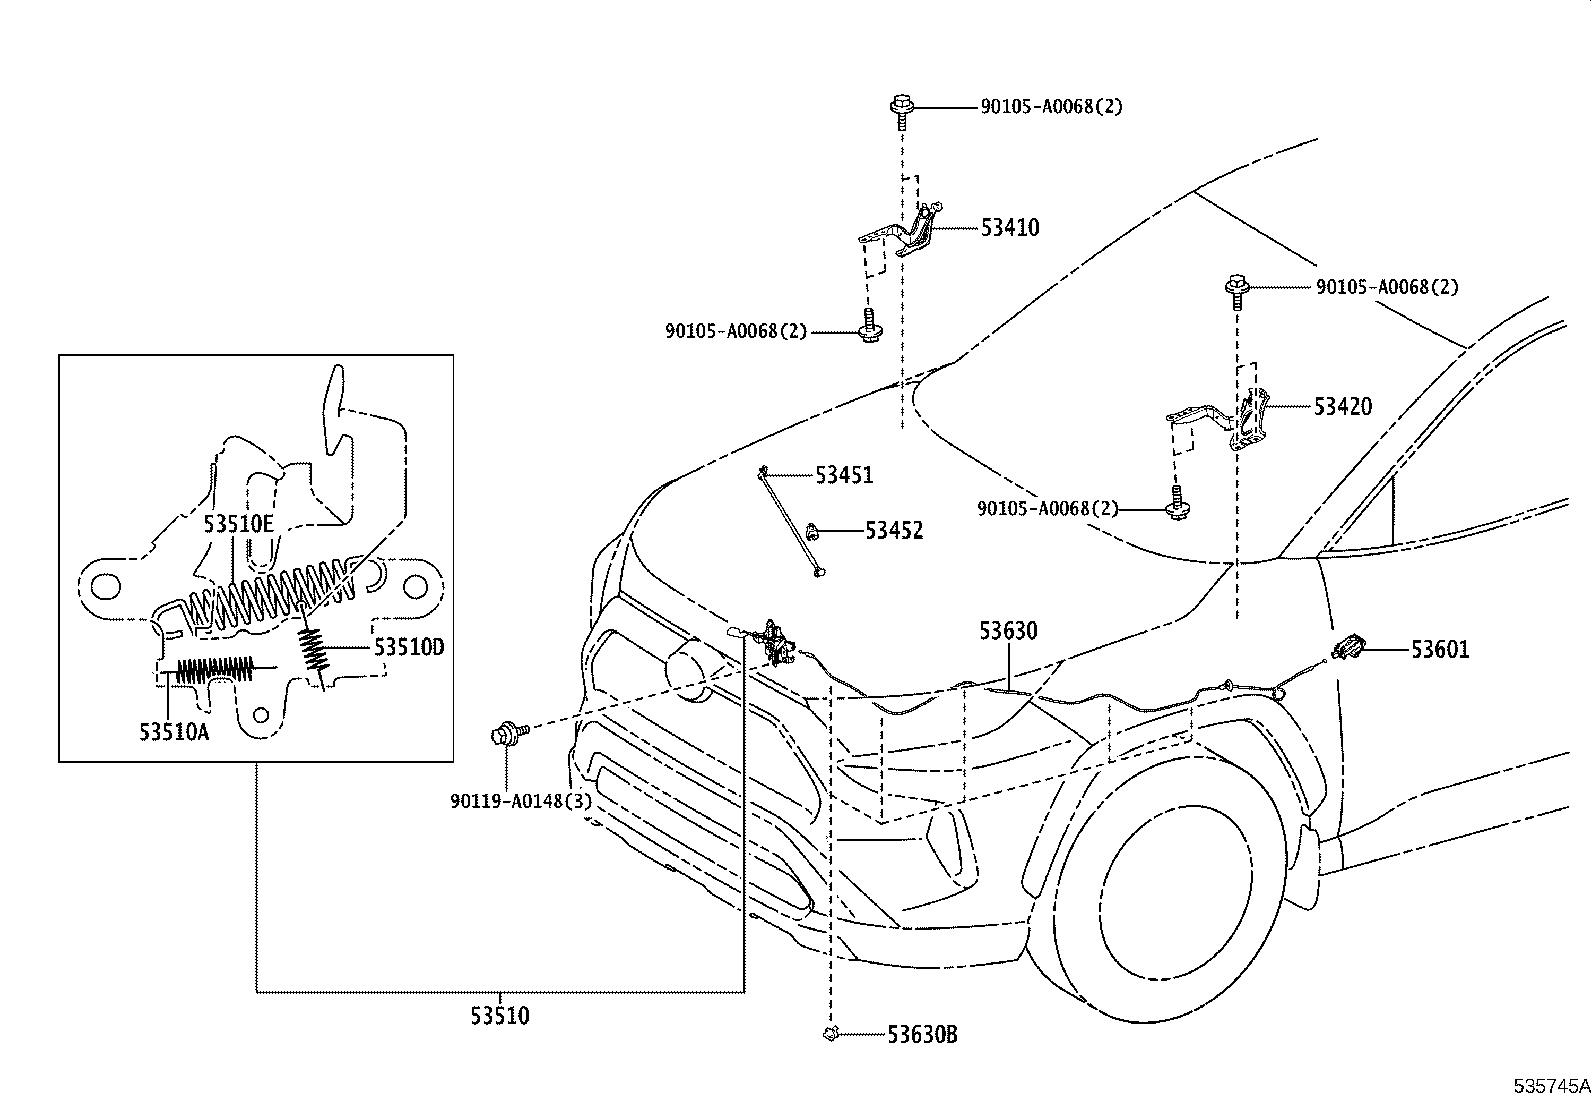 Diagram HOOD LOCK & HINGE for your 2020 Toyota RAV4 VIN: 4T3LWRFV